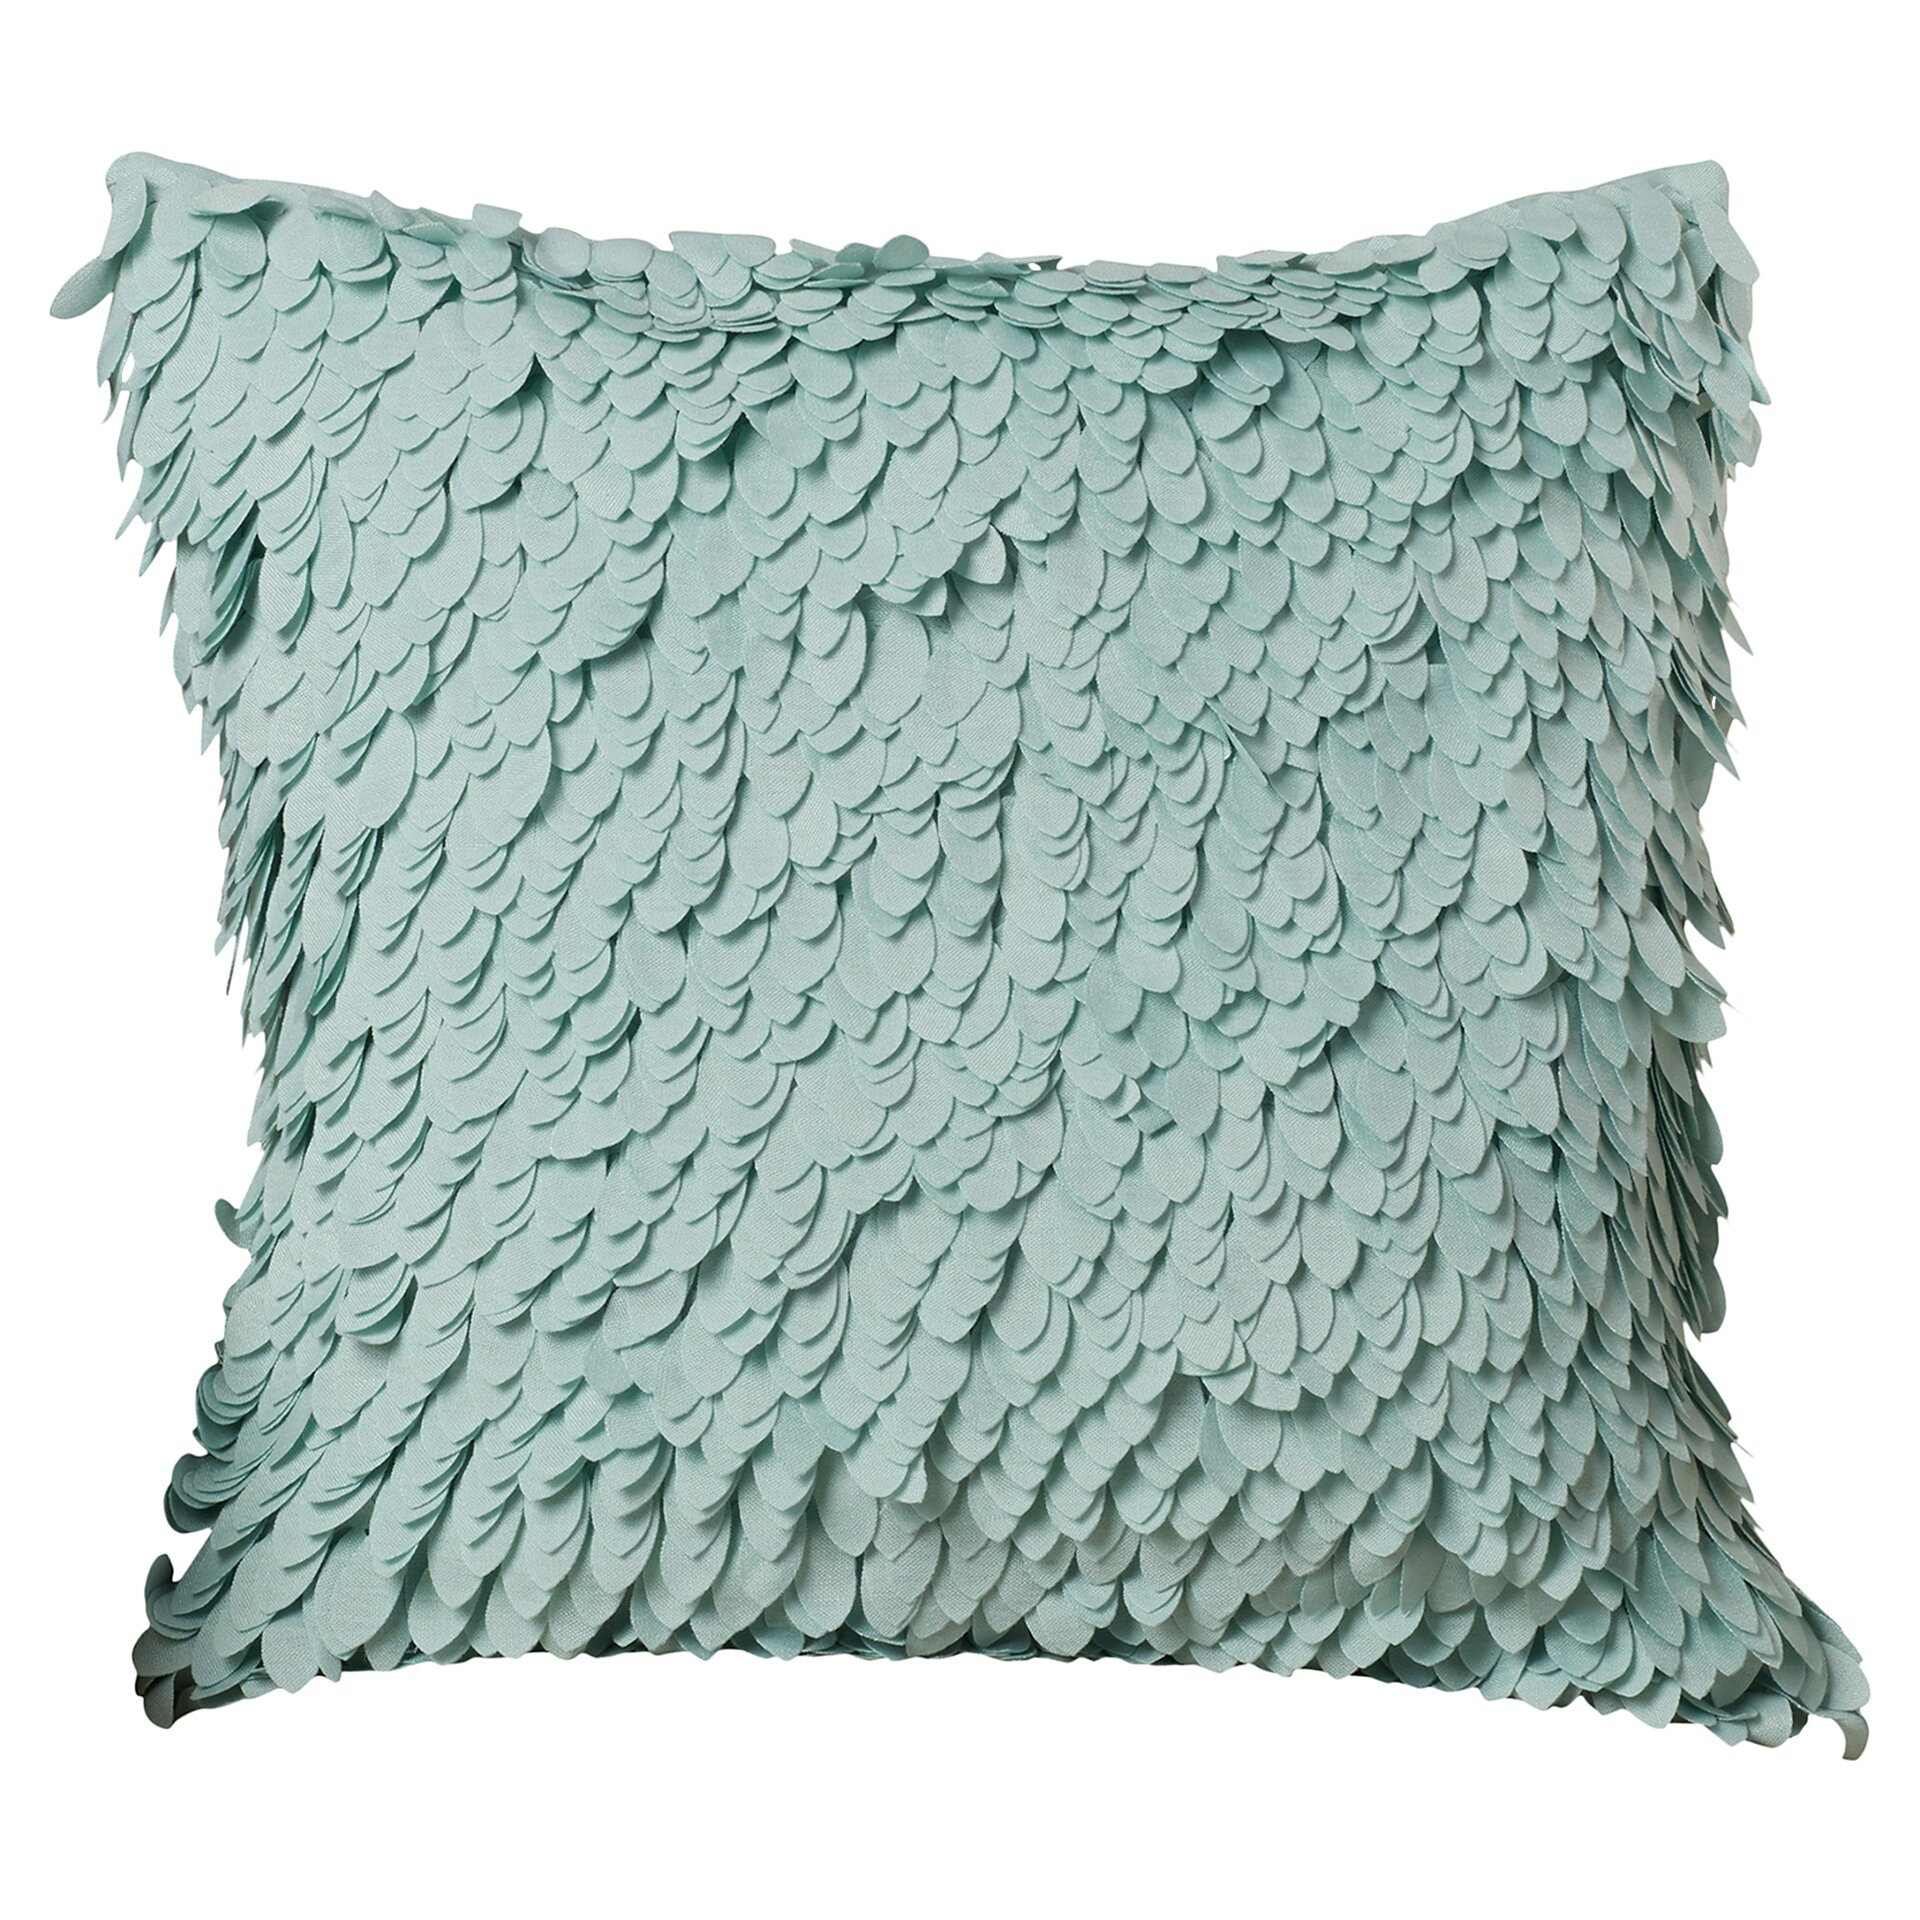 Throw Pillows With Ruffle Edge : House of Hampton Luanna Ruffle Throw Pillow & Reviews Wayfair.ca